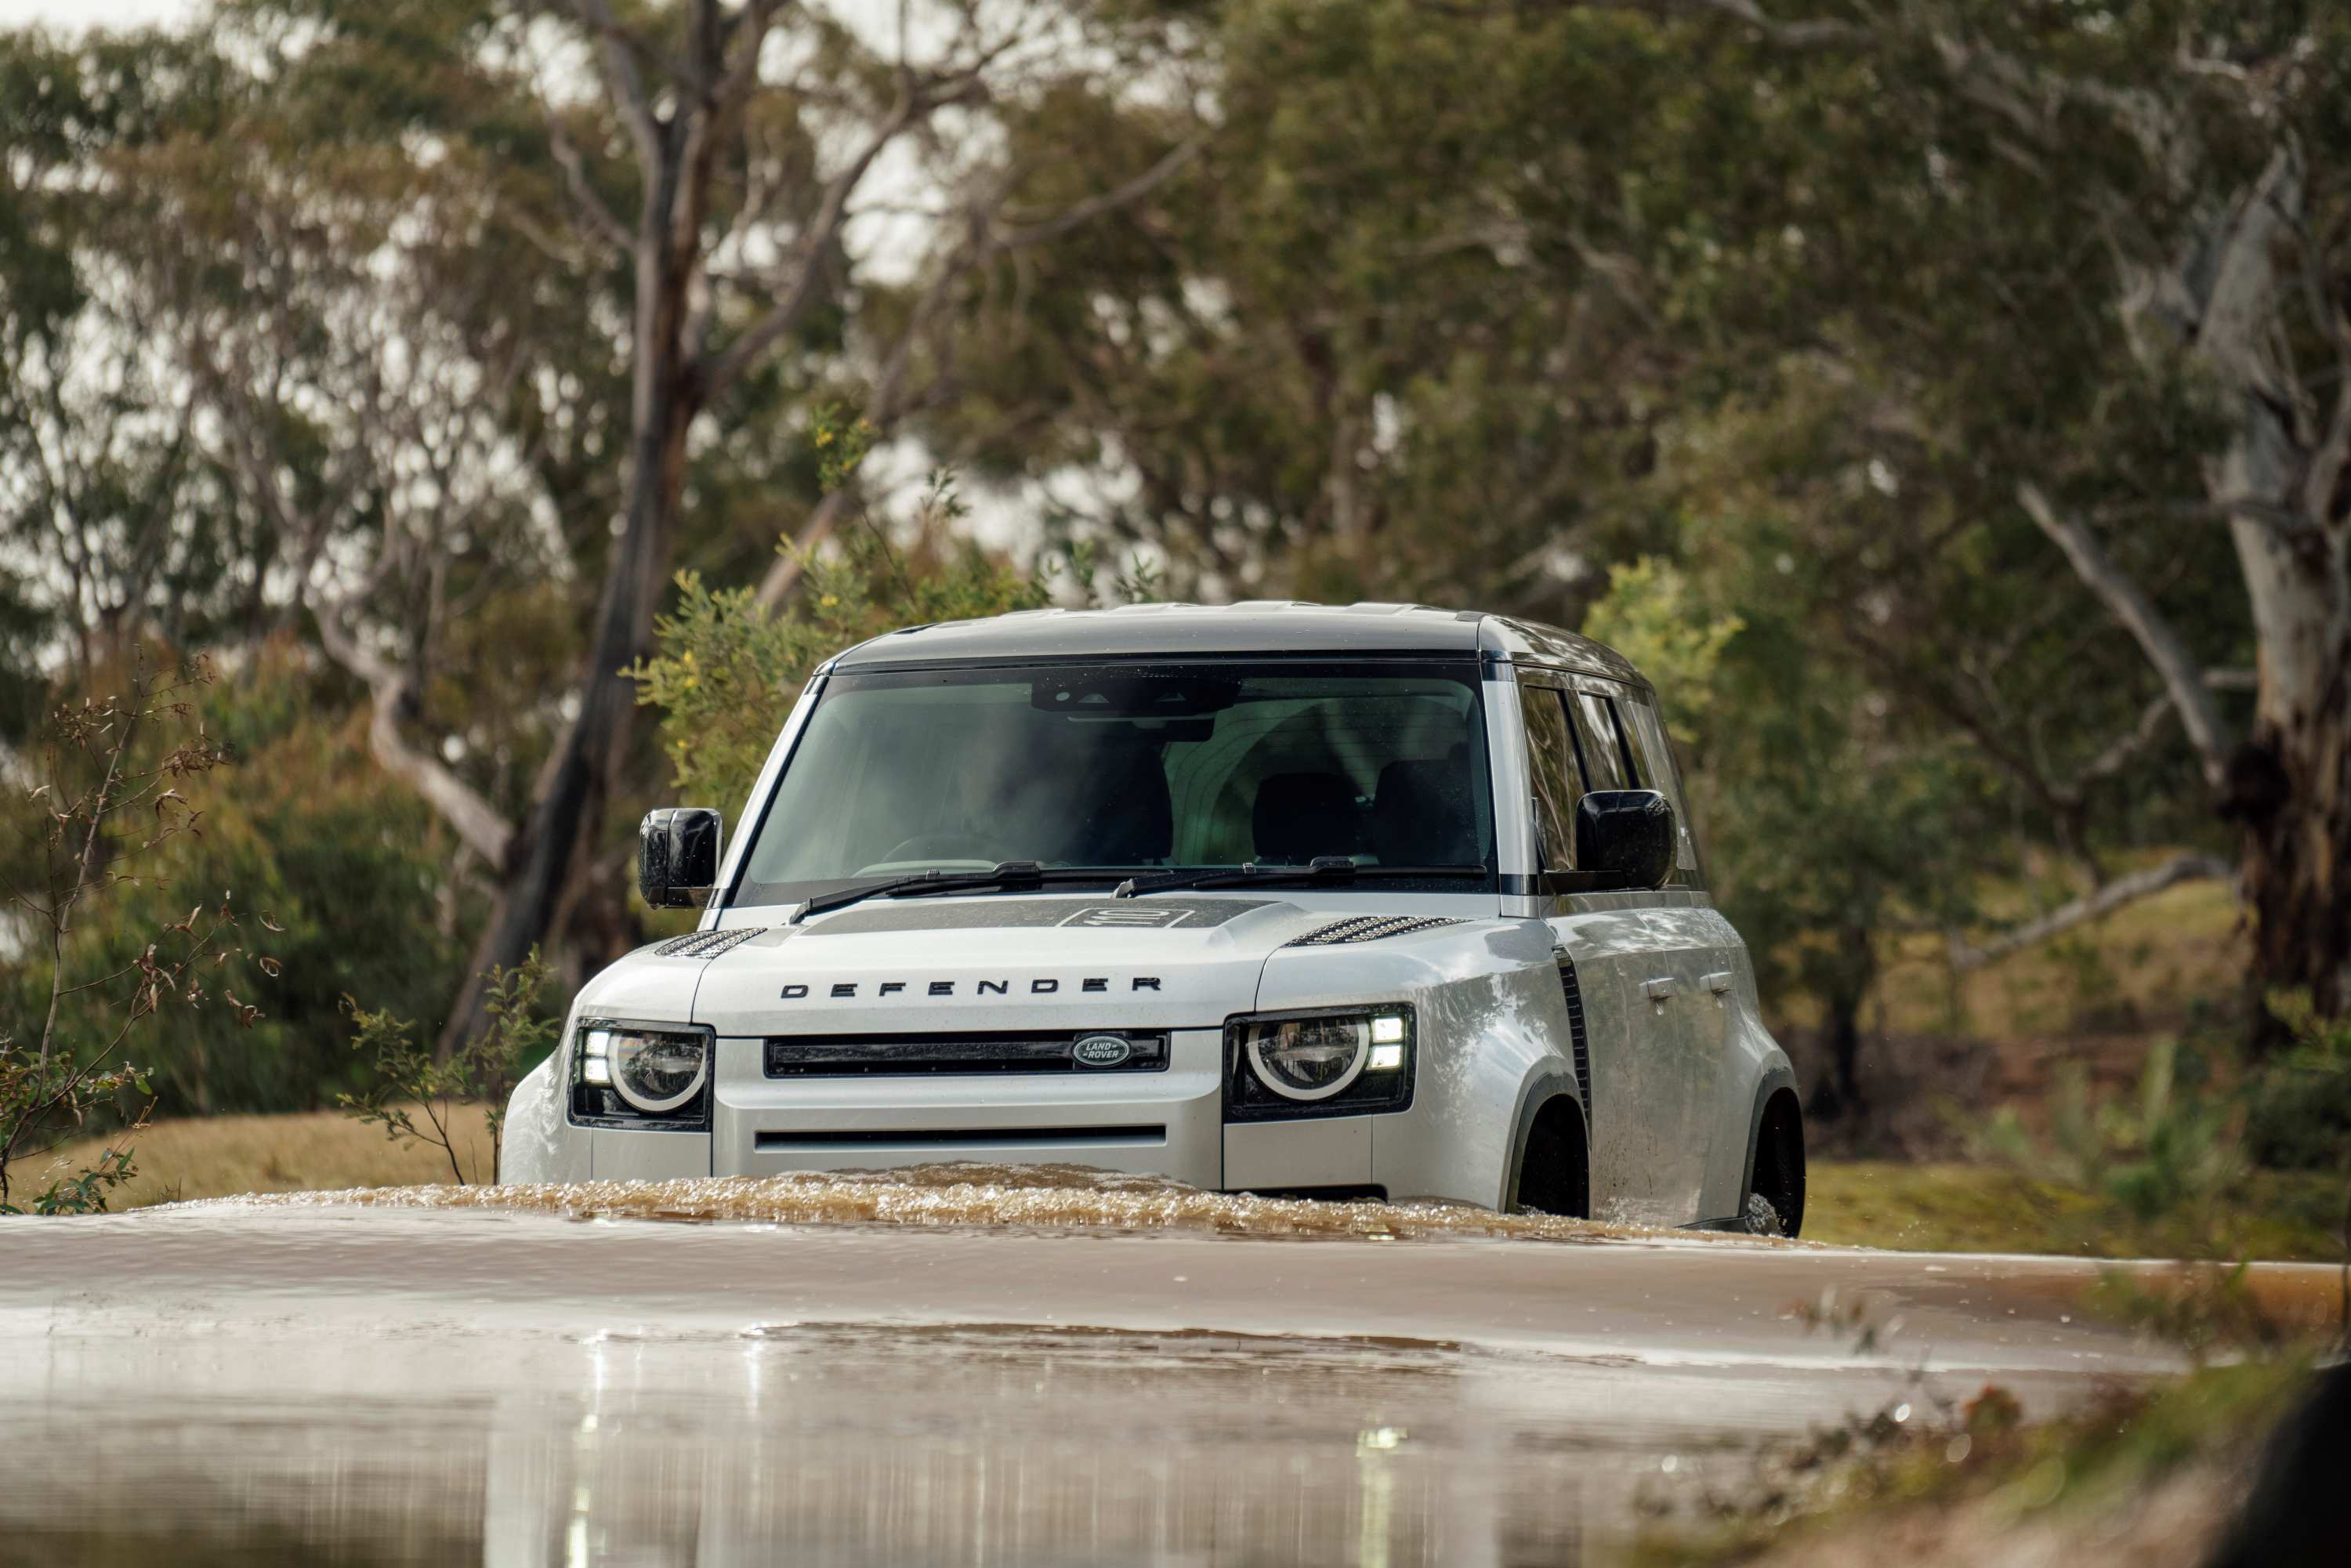 Land Rover Defender wading